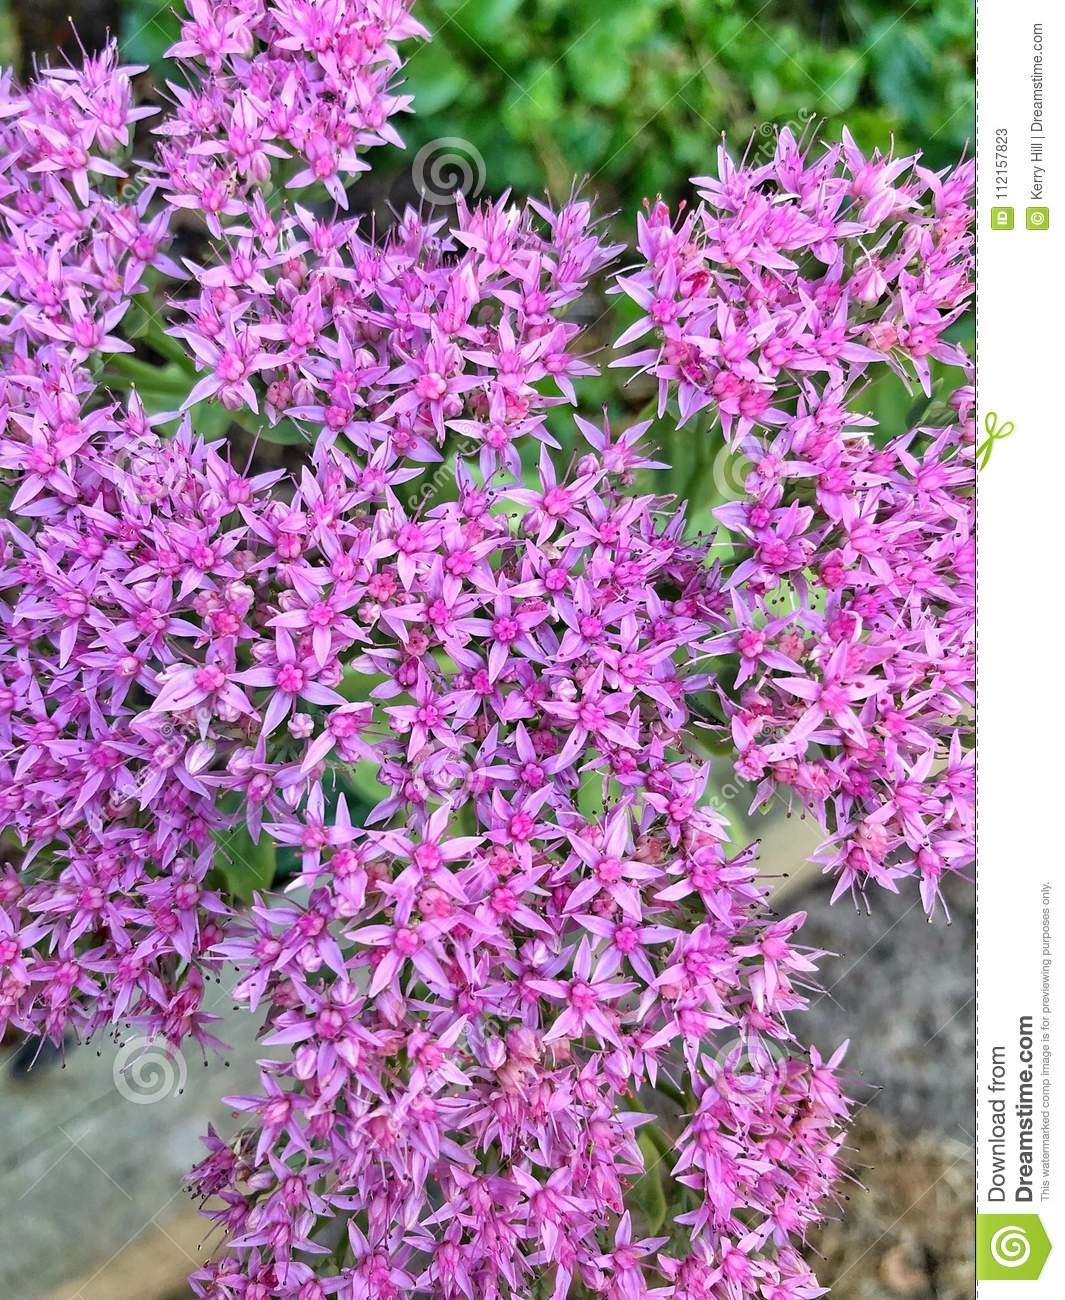 Pink Star Shaped Flowers Stock Image Image Of Pretty 112157823